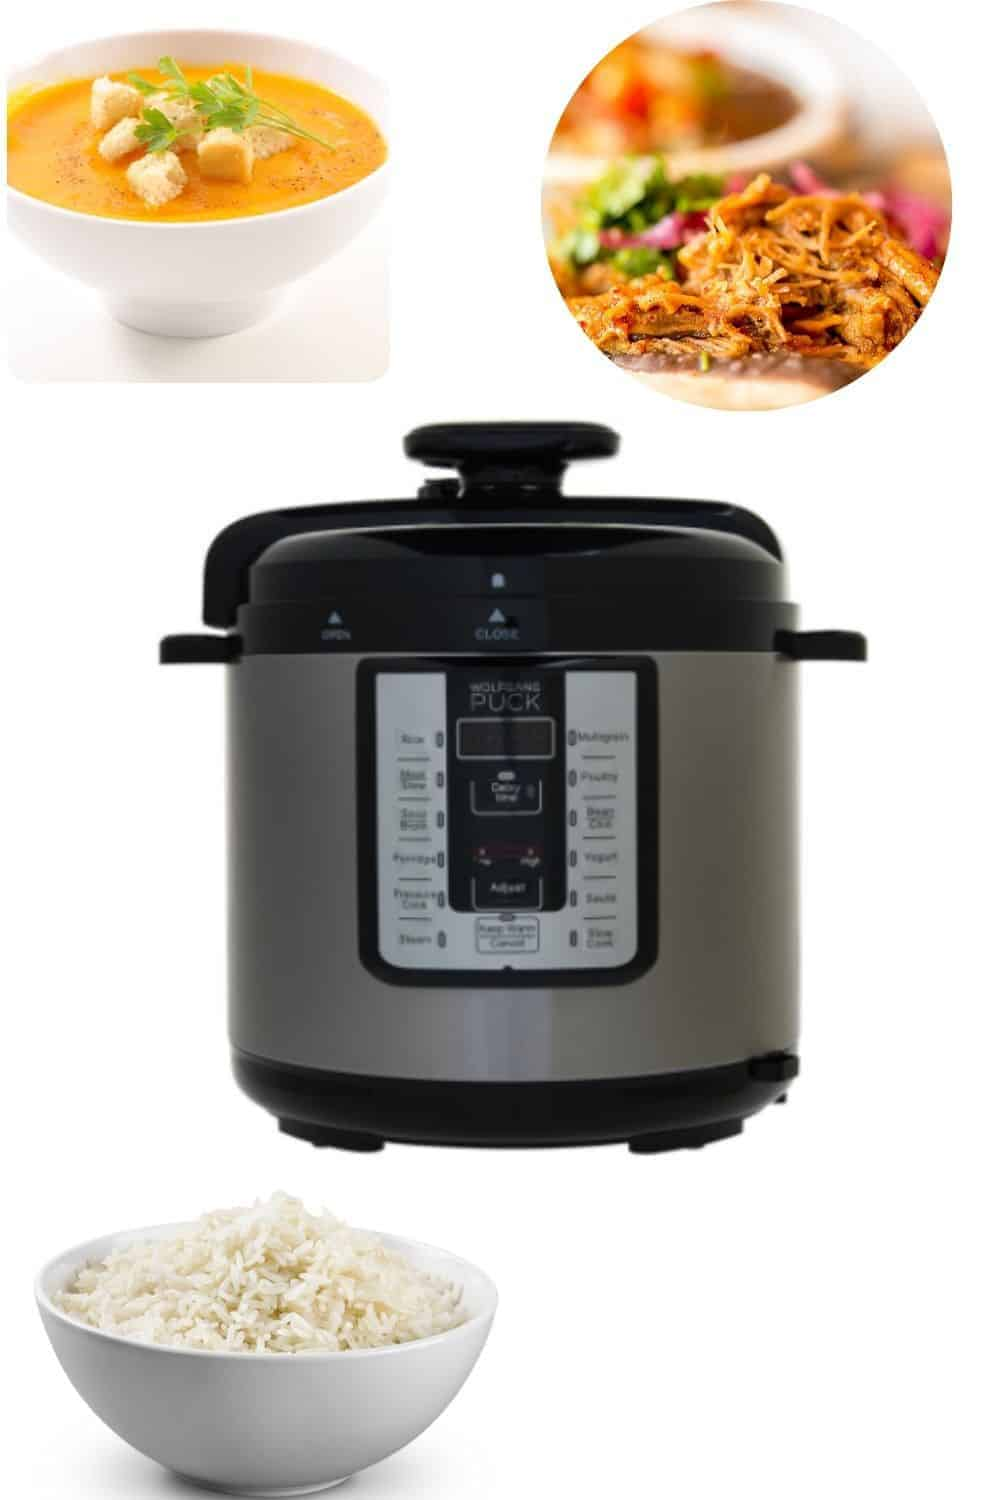 wolfgang puck pressure cooker fabulous FALL products you will love